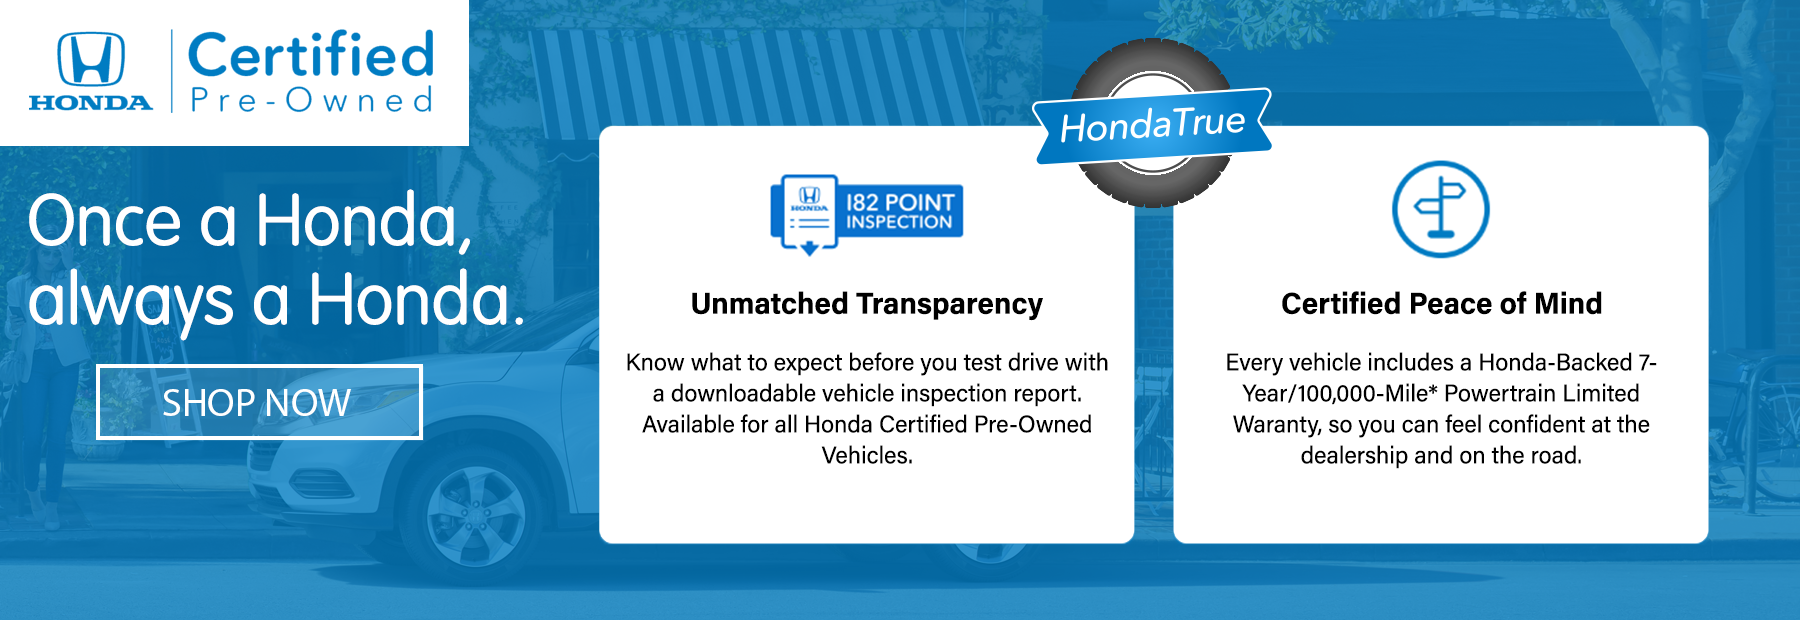 certified-pre-owned-honda-vehicles-cincinnati